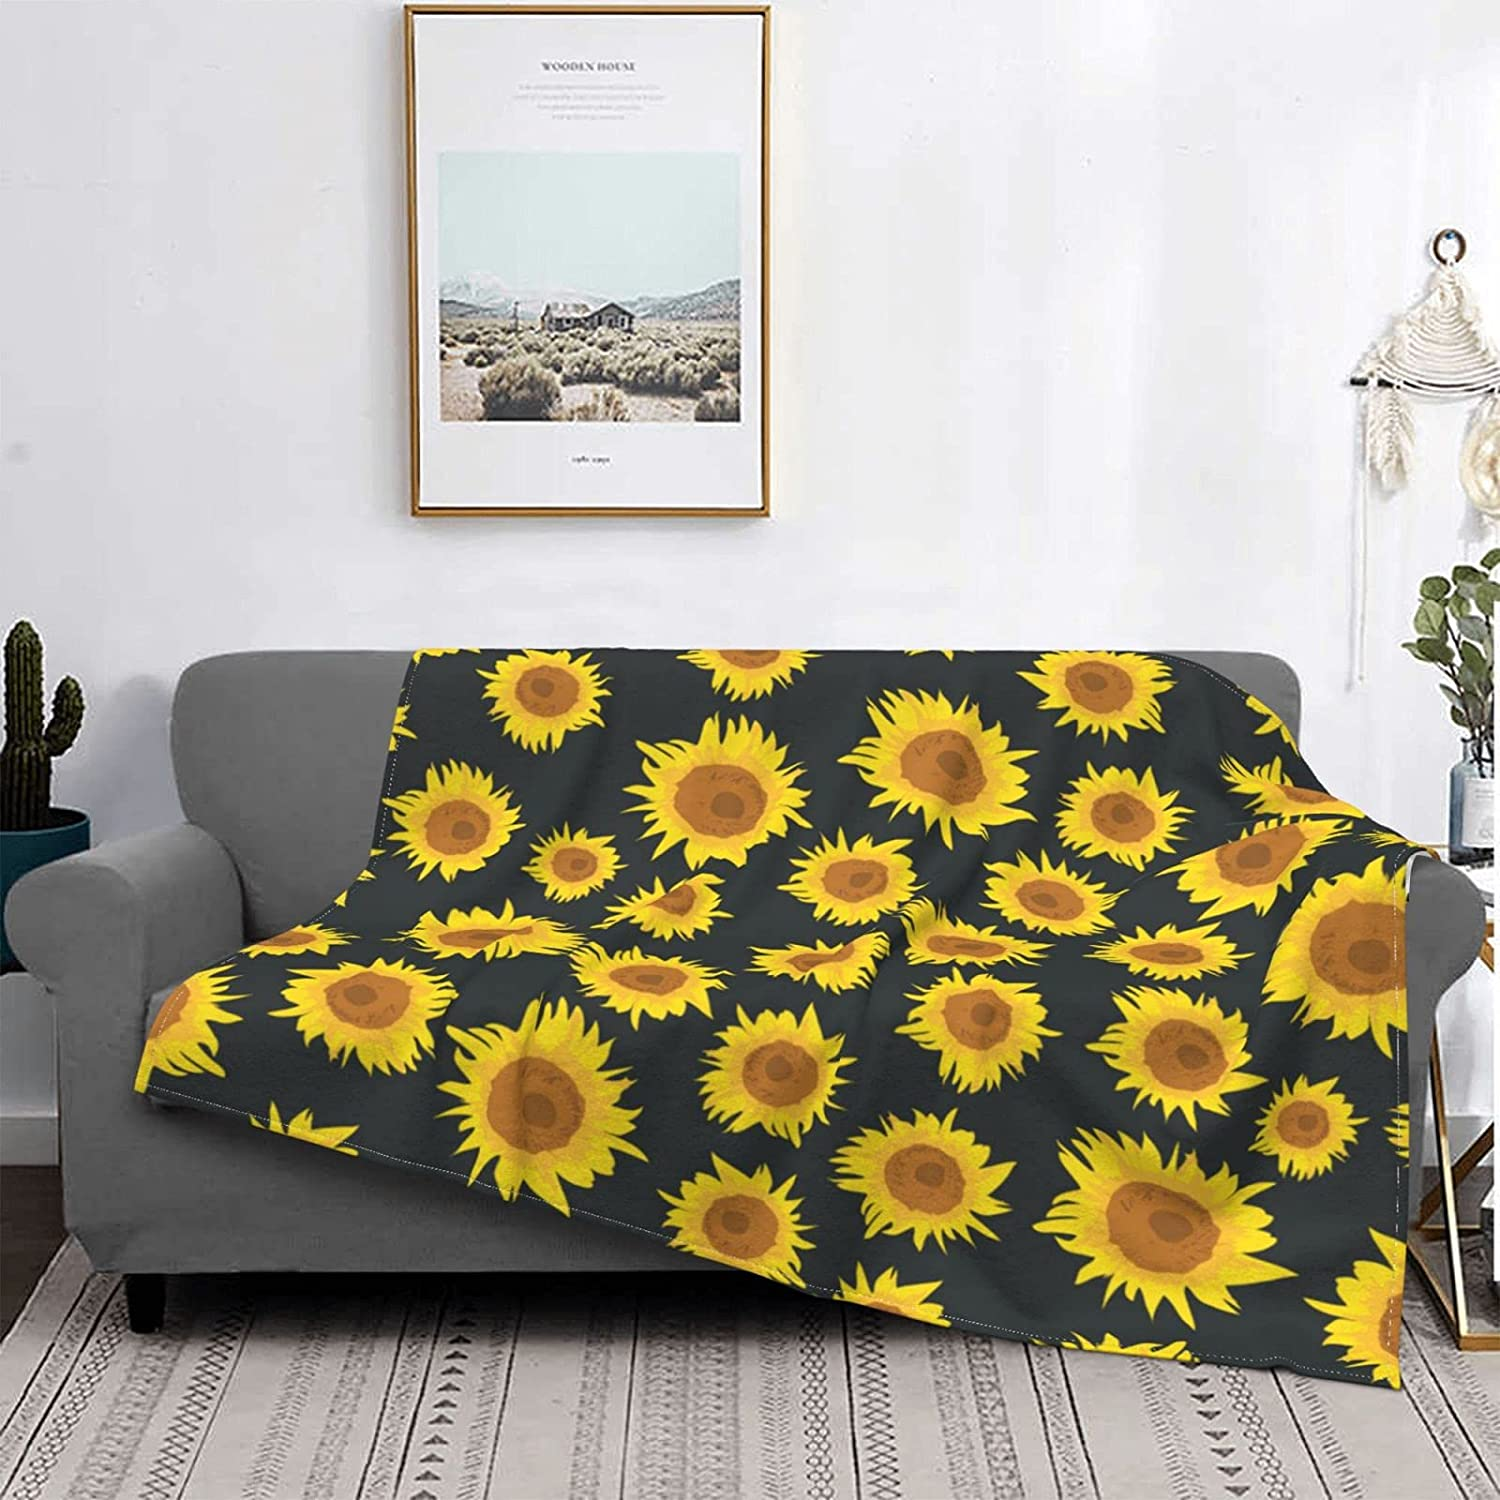 Quantity Max 78% OFF limited Fleece Throw Blankets Seamless Re Pattern Sunflower Illustration